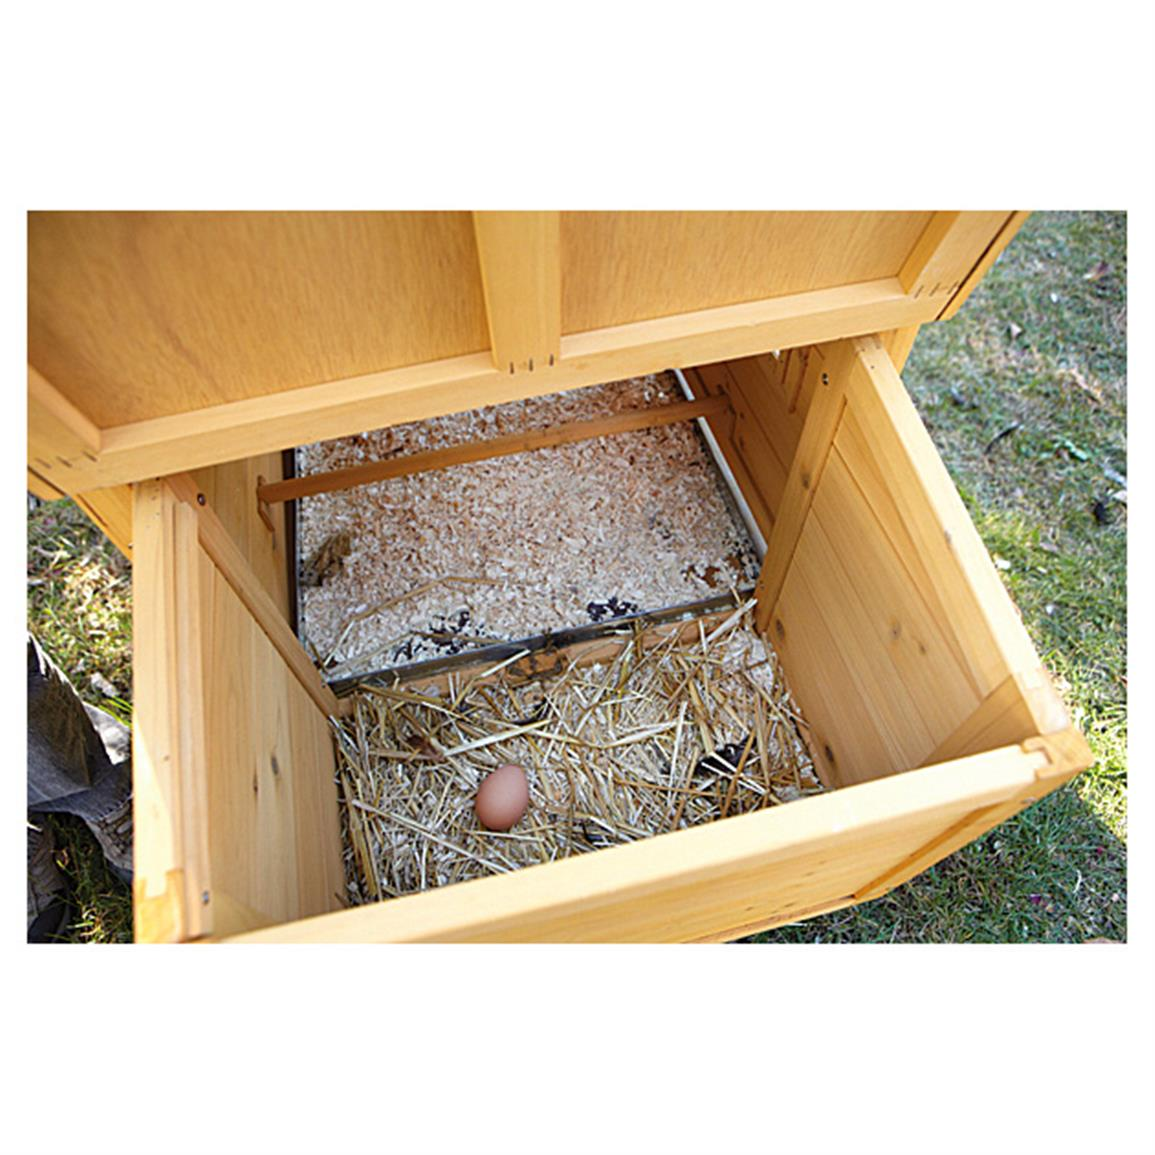 Hinged nesting box for easier egg collection